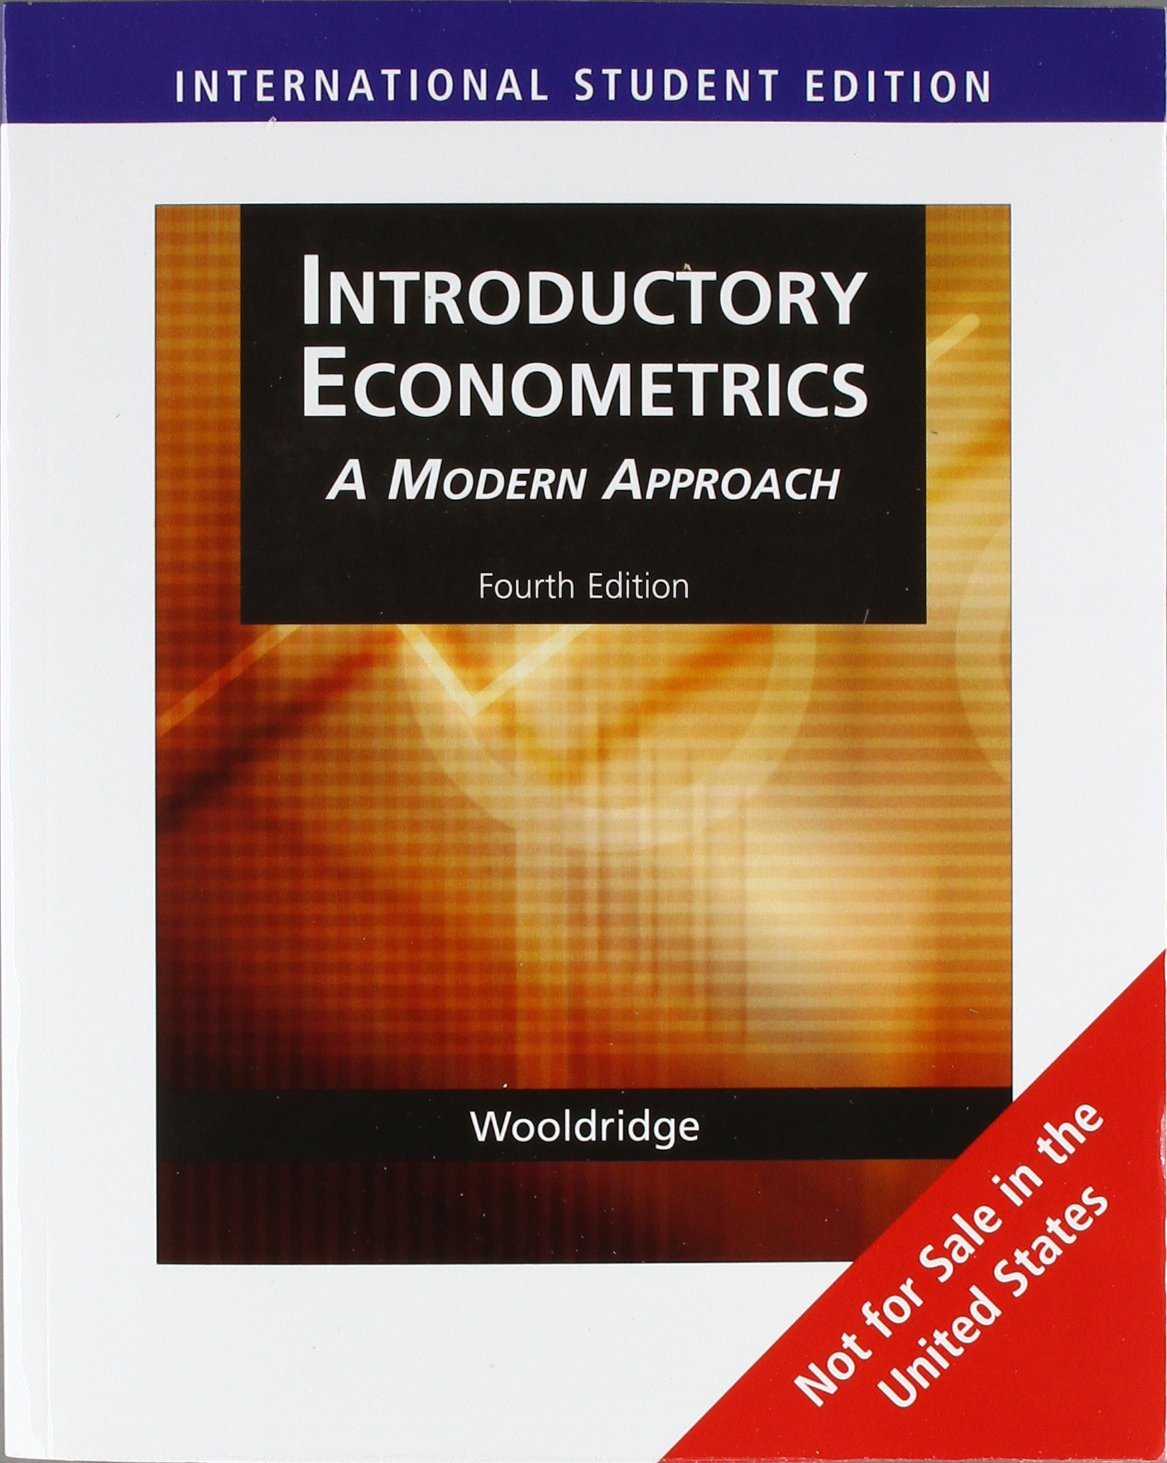 Introductory Econometrics: Amazon.co.uk: Jeffrey Wooldridge: 8601300204901:  Books